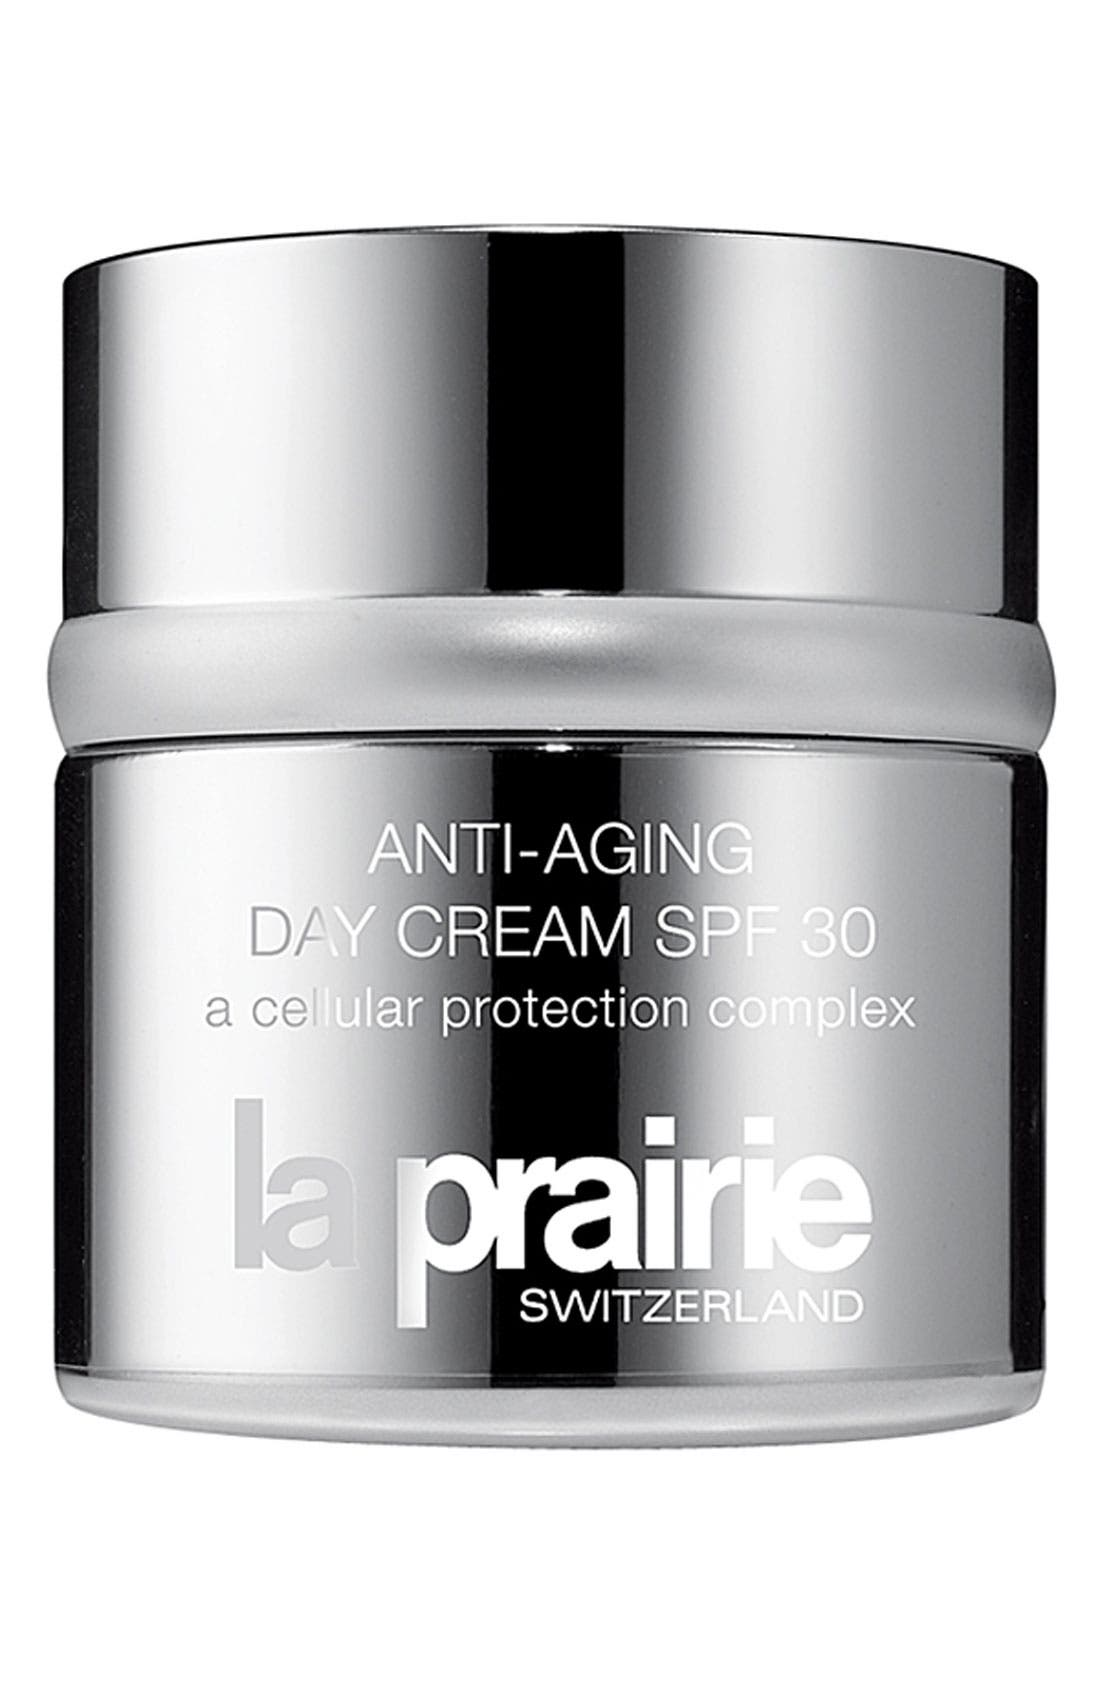 La Prairie Anti-Aging Day Cream Sunscreen Broad Spectrum SPF 30